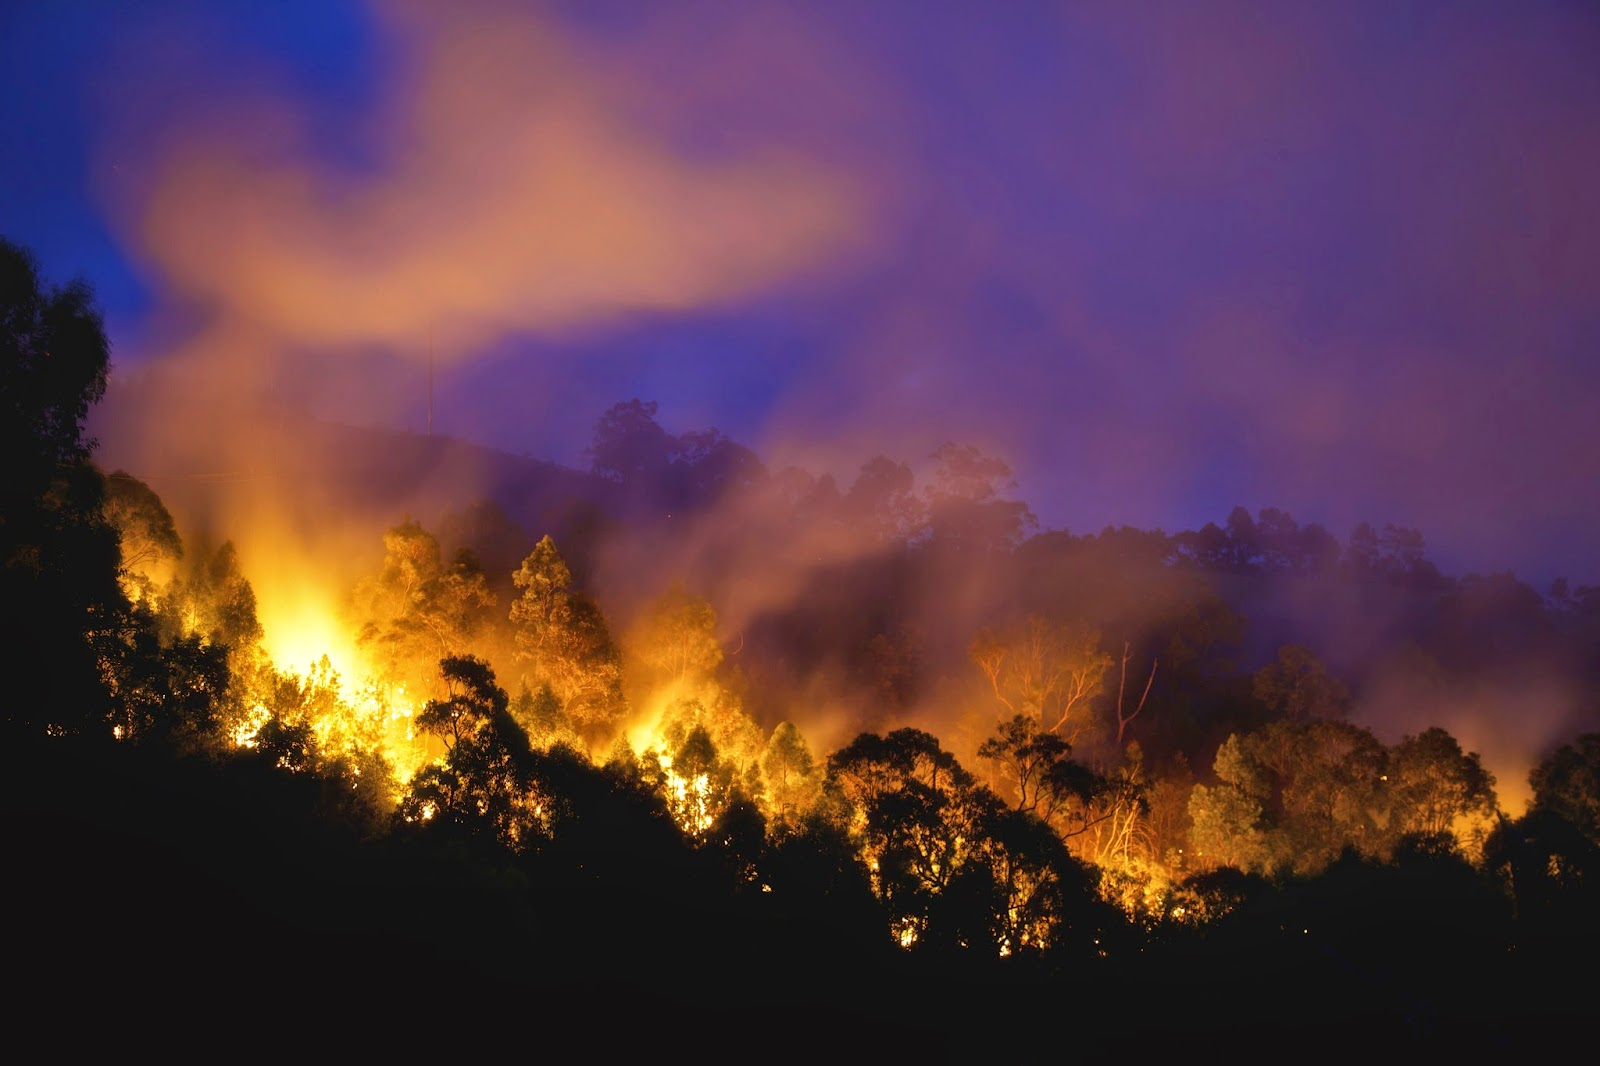 Smoky wildfire at night